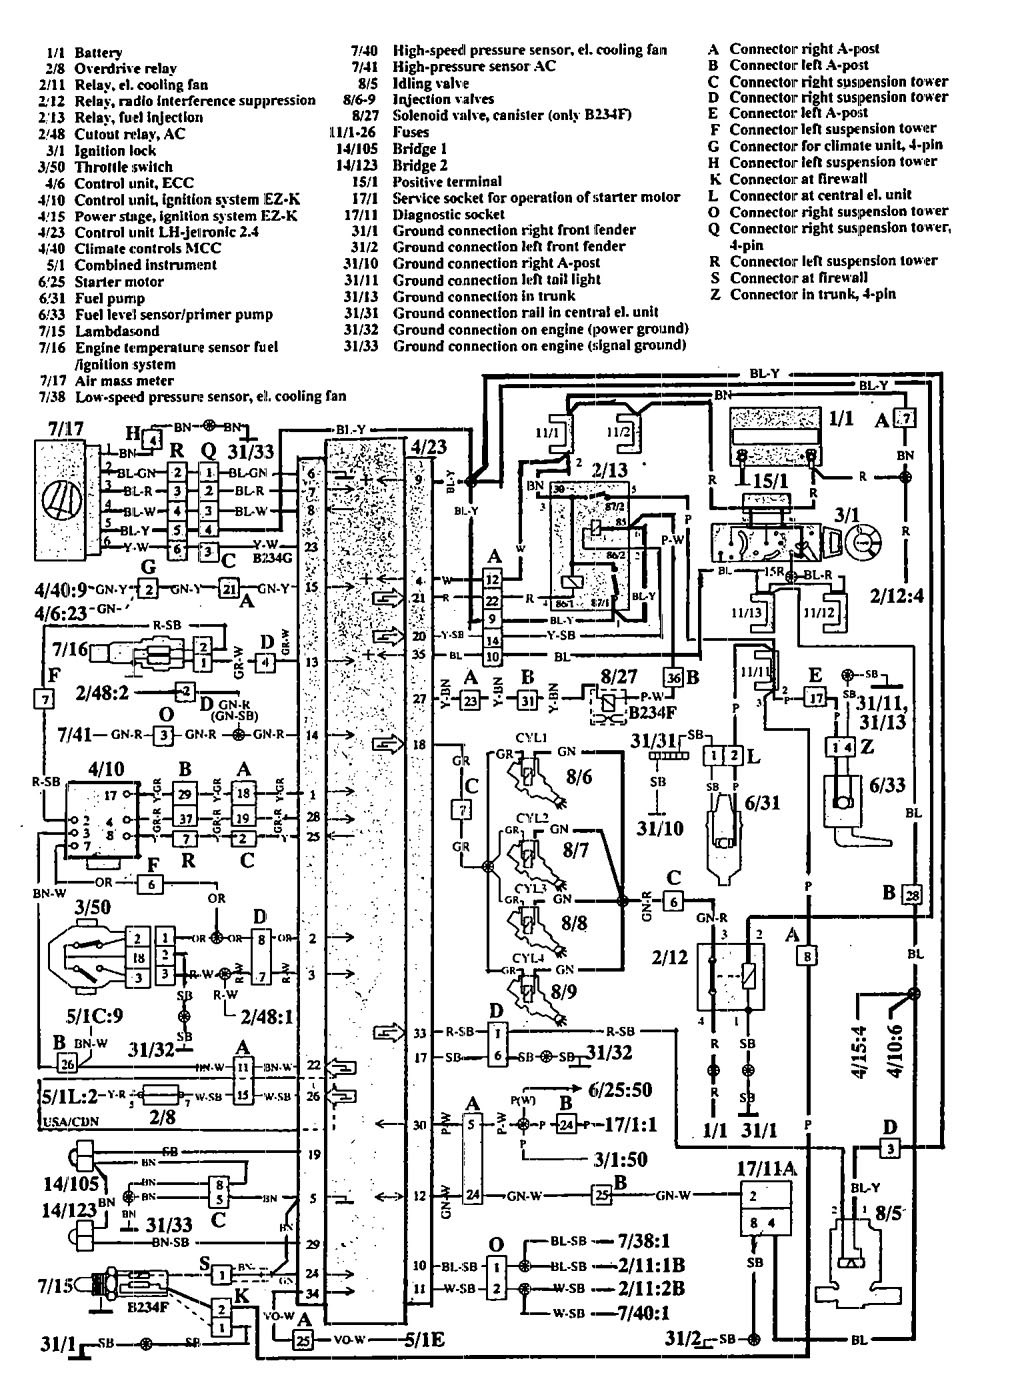 95 volvo 940 wiring diagram wiring diagram yer volvo 940 electrical wiring diagram 1995 volvo 940 [ 1024 x 1373 Pixel ]